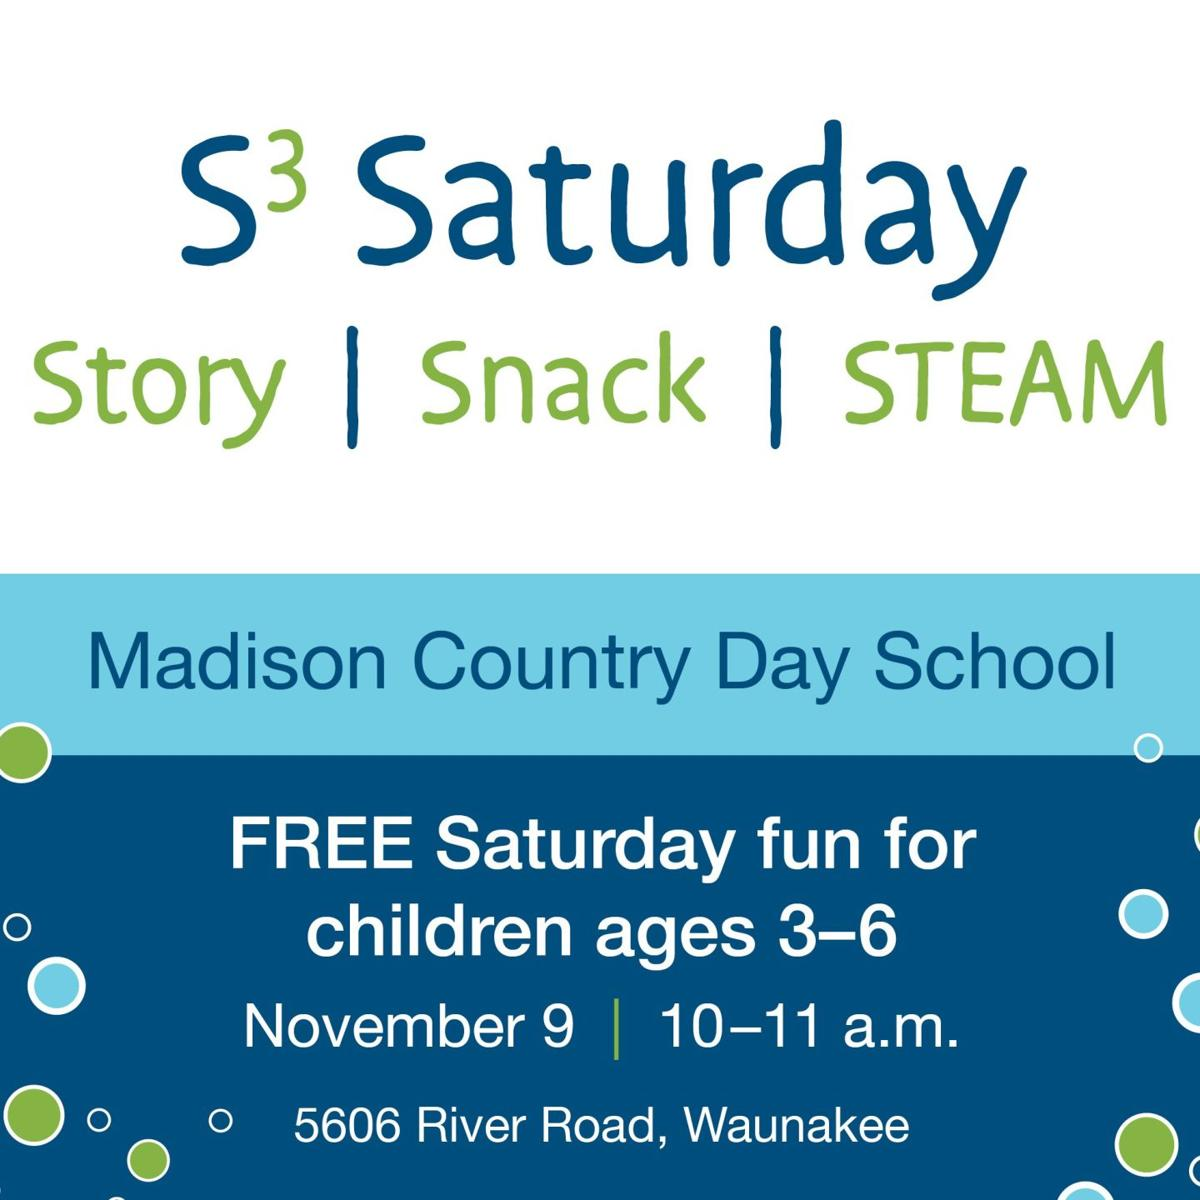 Story, Snack, and STEAM at Madison Country Day School